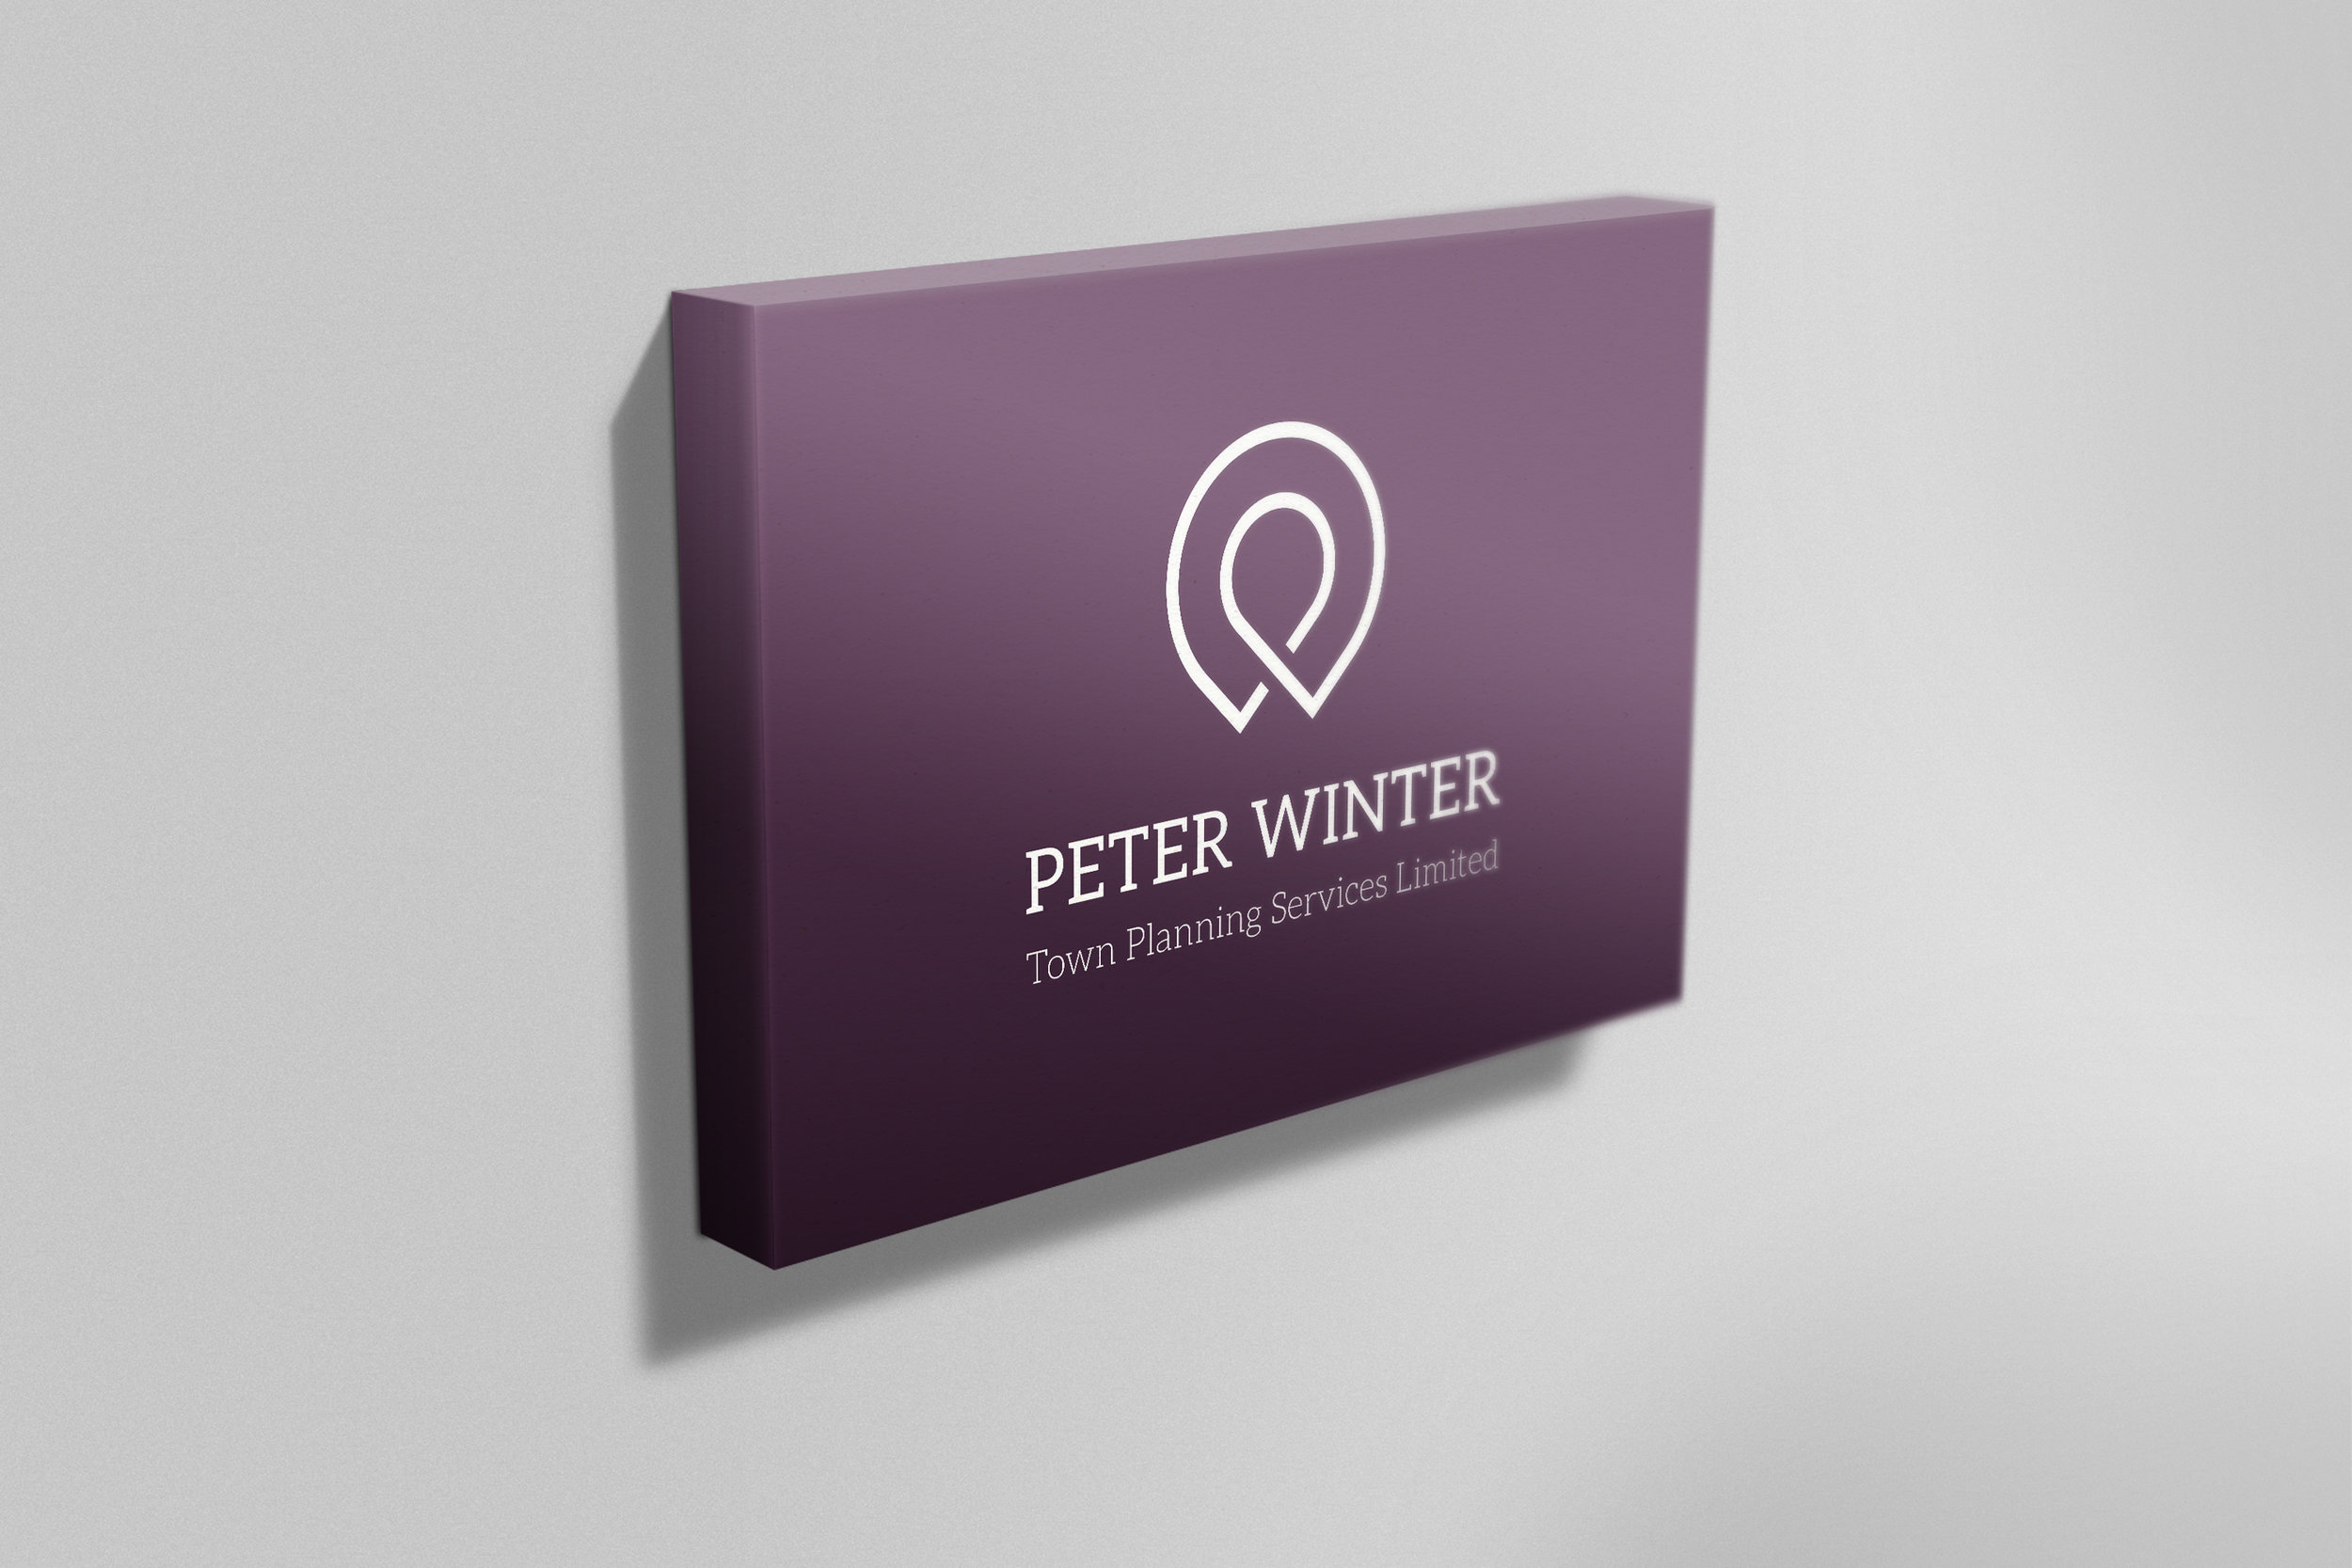 PeterWinter_branding.jpg